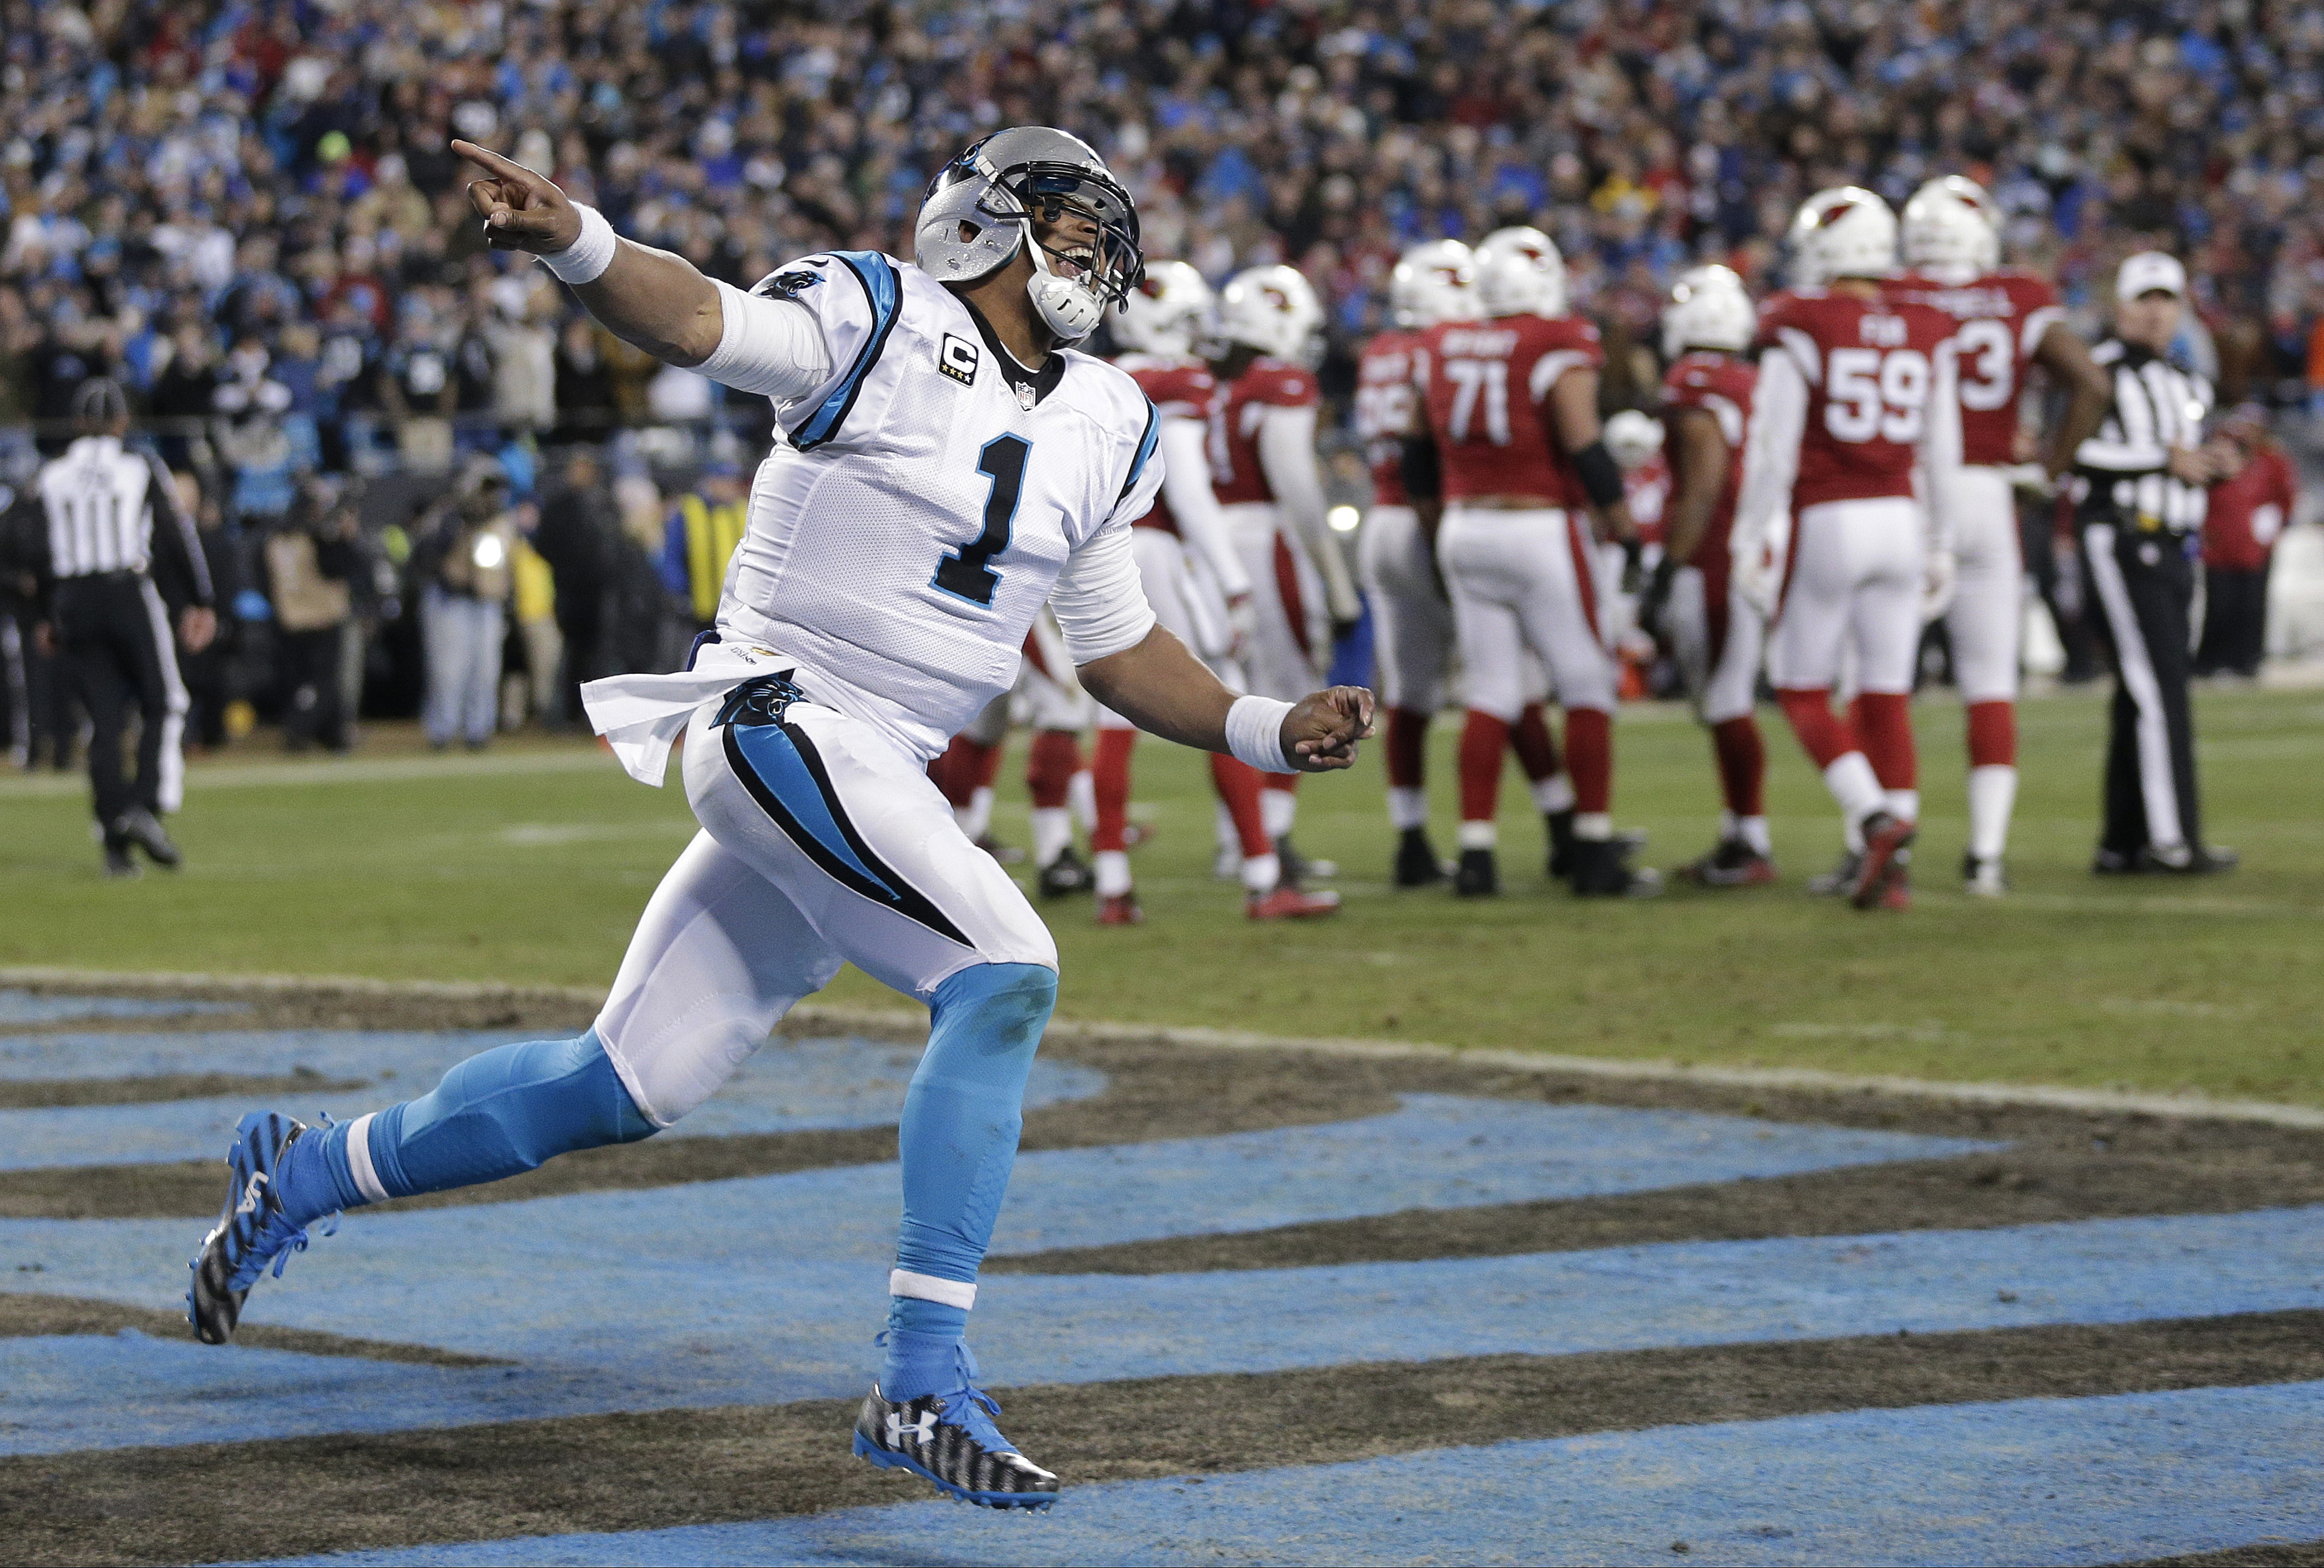 FILe - In this jan. 24, 2016, file photo, Carolina Panthers' Cam Newton celebrates his touchdown run during the first half the NFL football NFC Championship game against the Arizona Cardinals, n Charlotte, N.C. The Super Bowl bound Carolina Panthers have